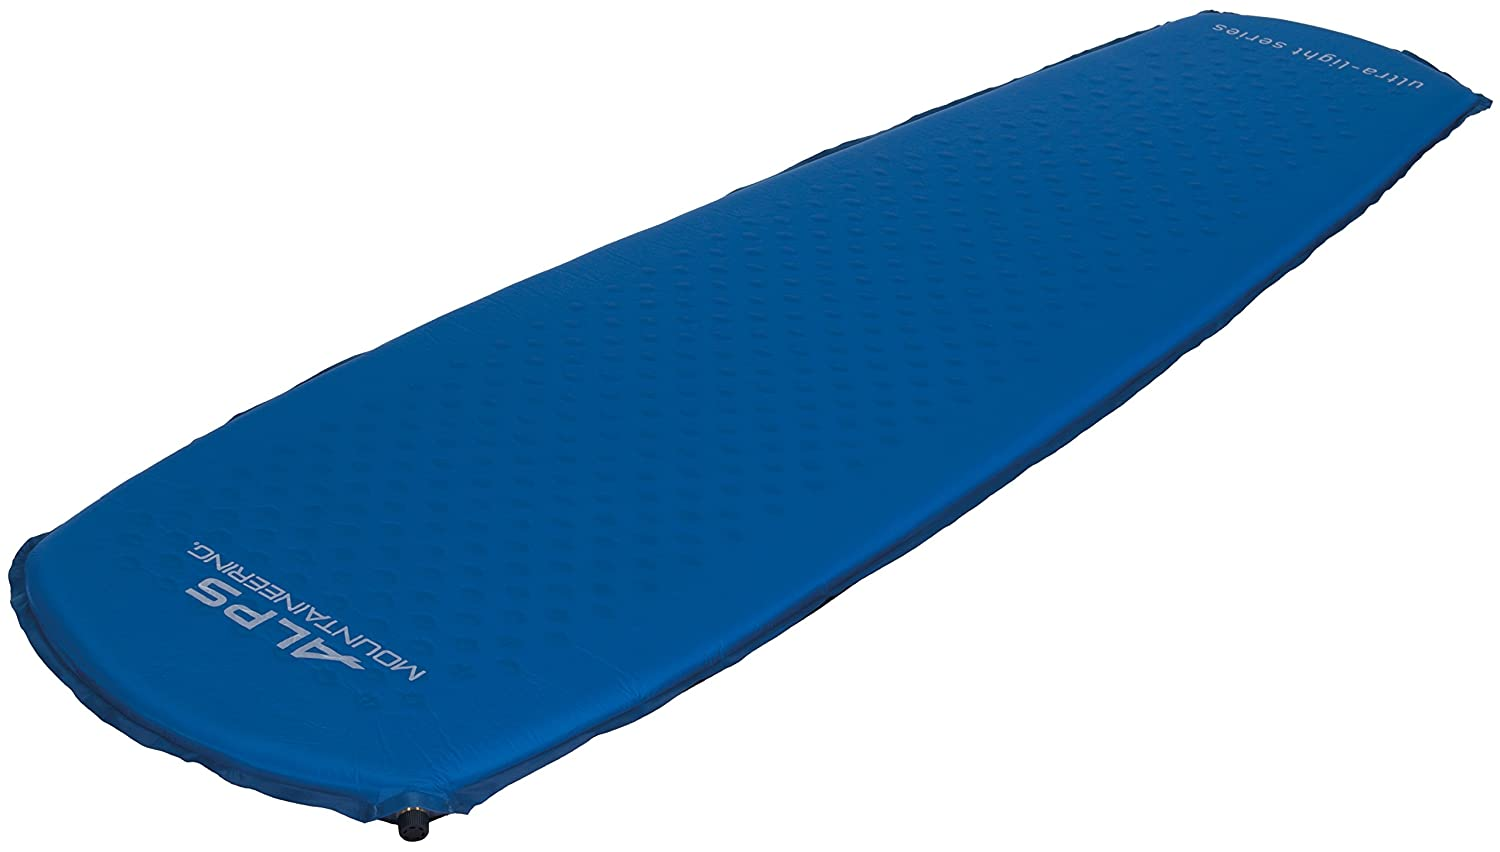 ALPS Mountaineering Ultralight Series Air Pad (mehrere Größen)